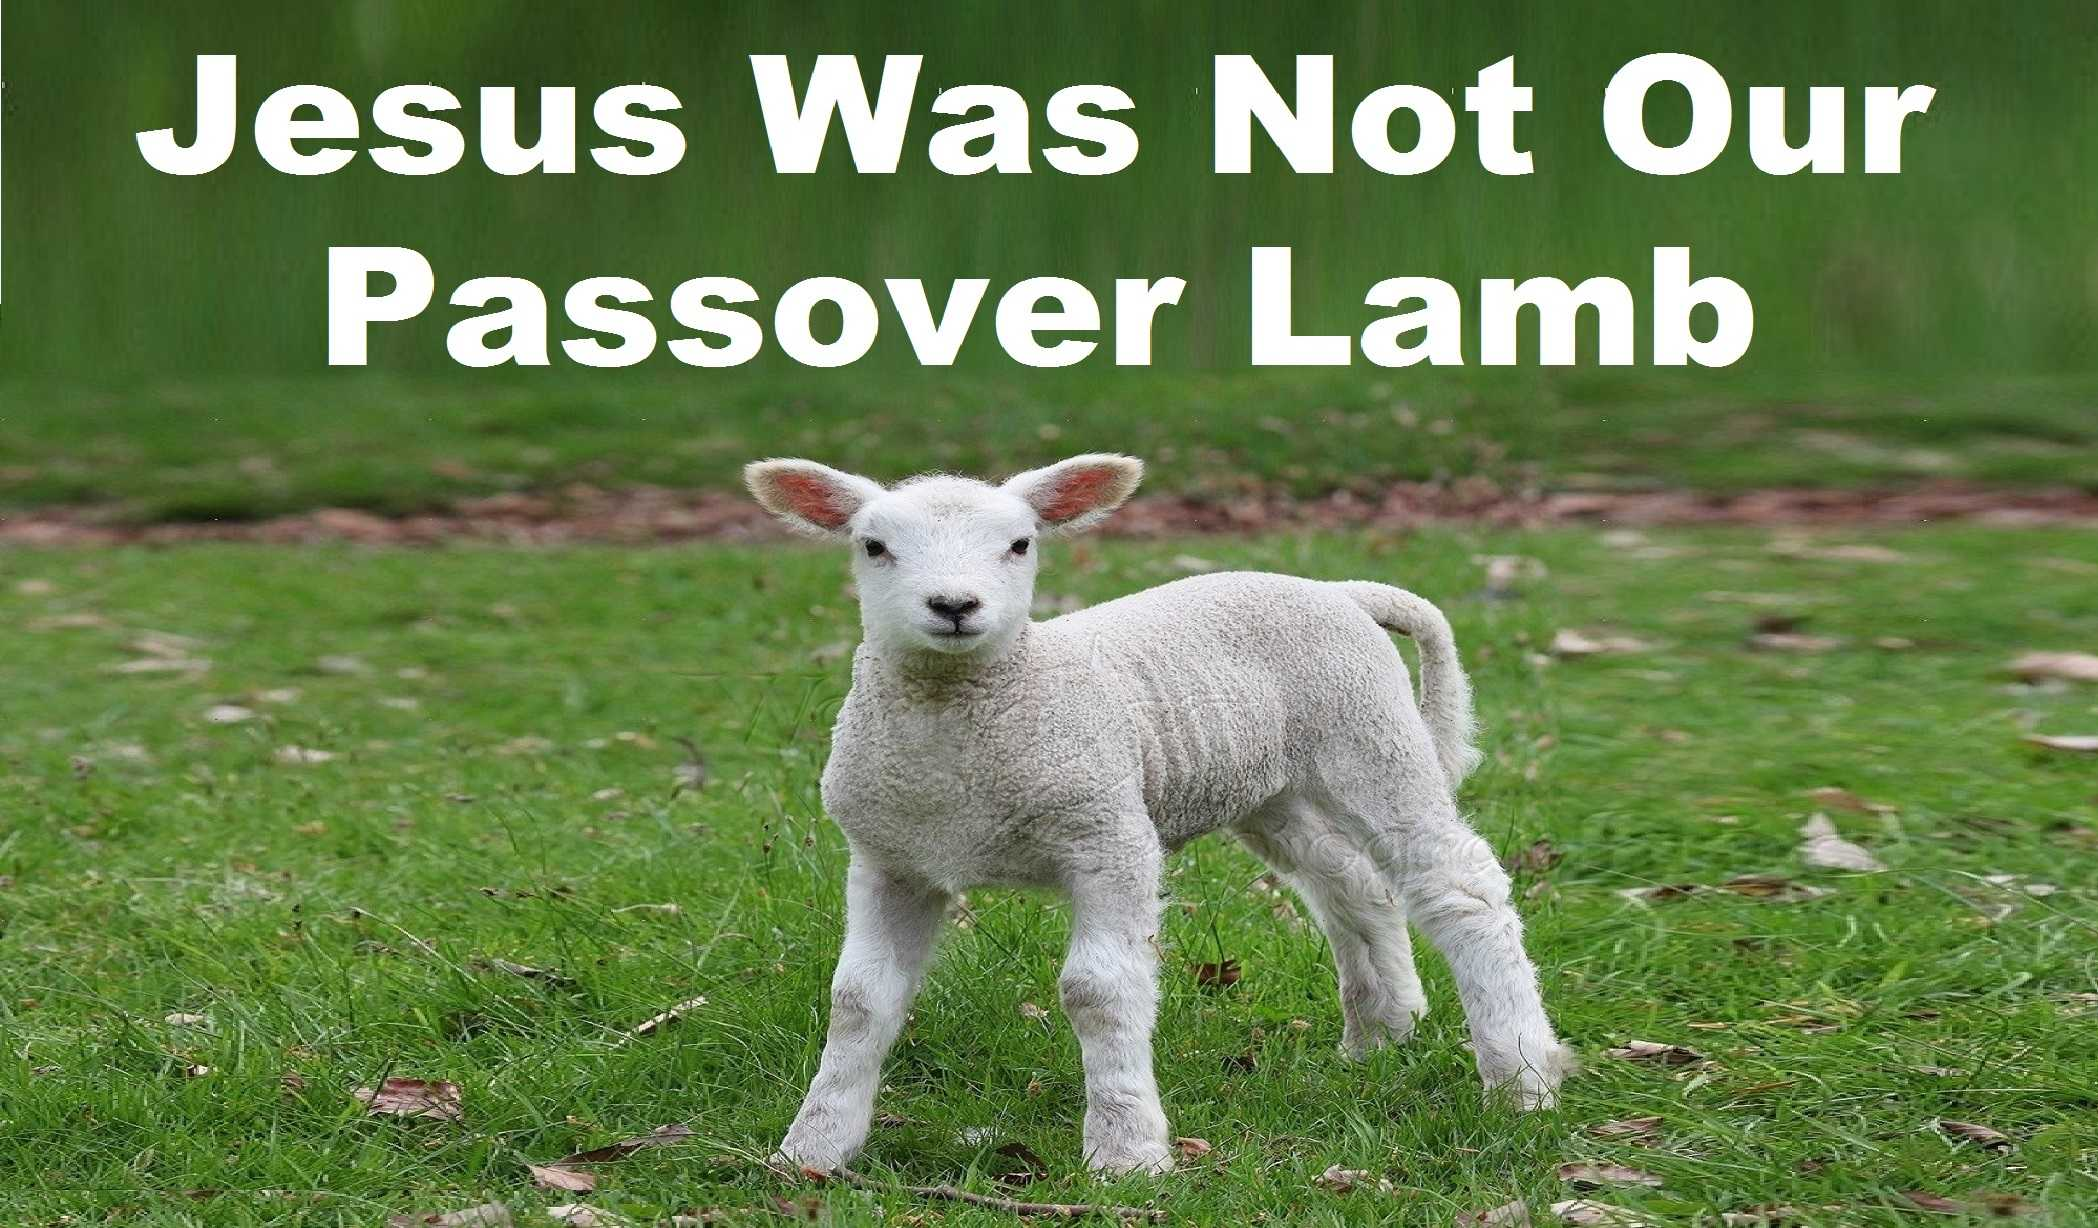 Jesus Was Not Our Passover Lamb - Jews for Judaism